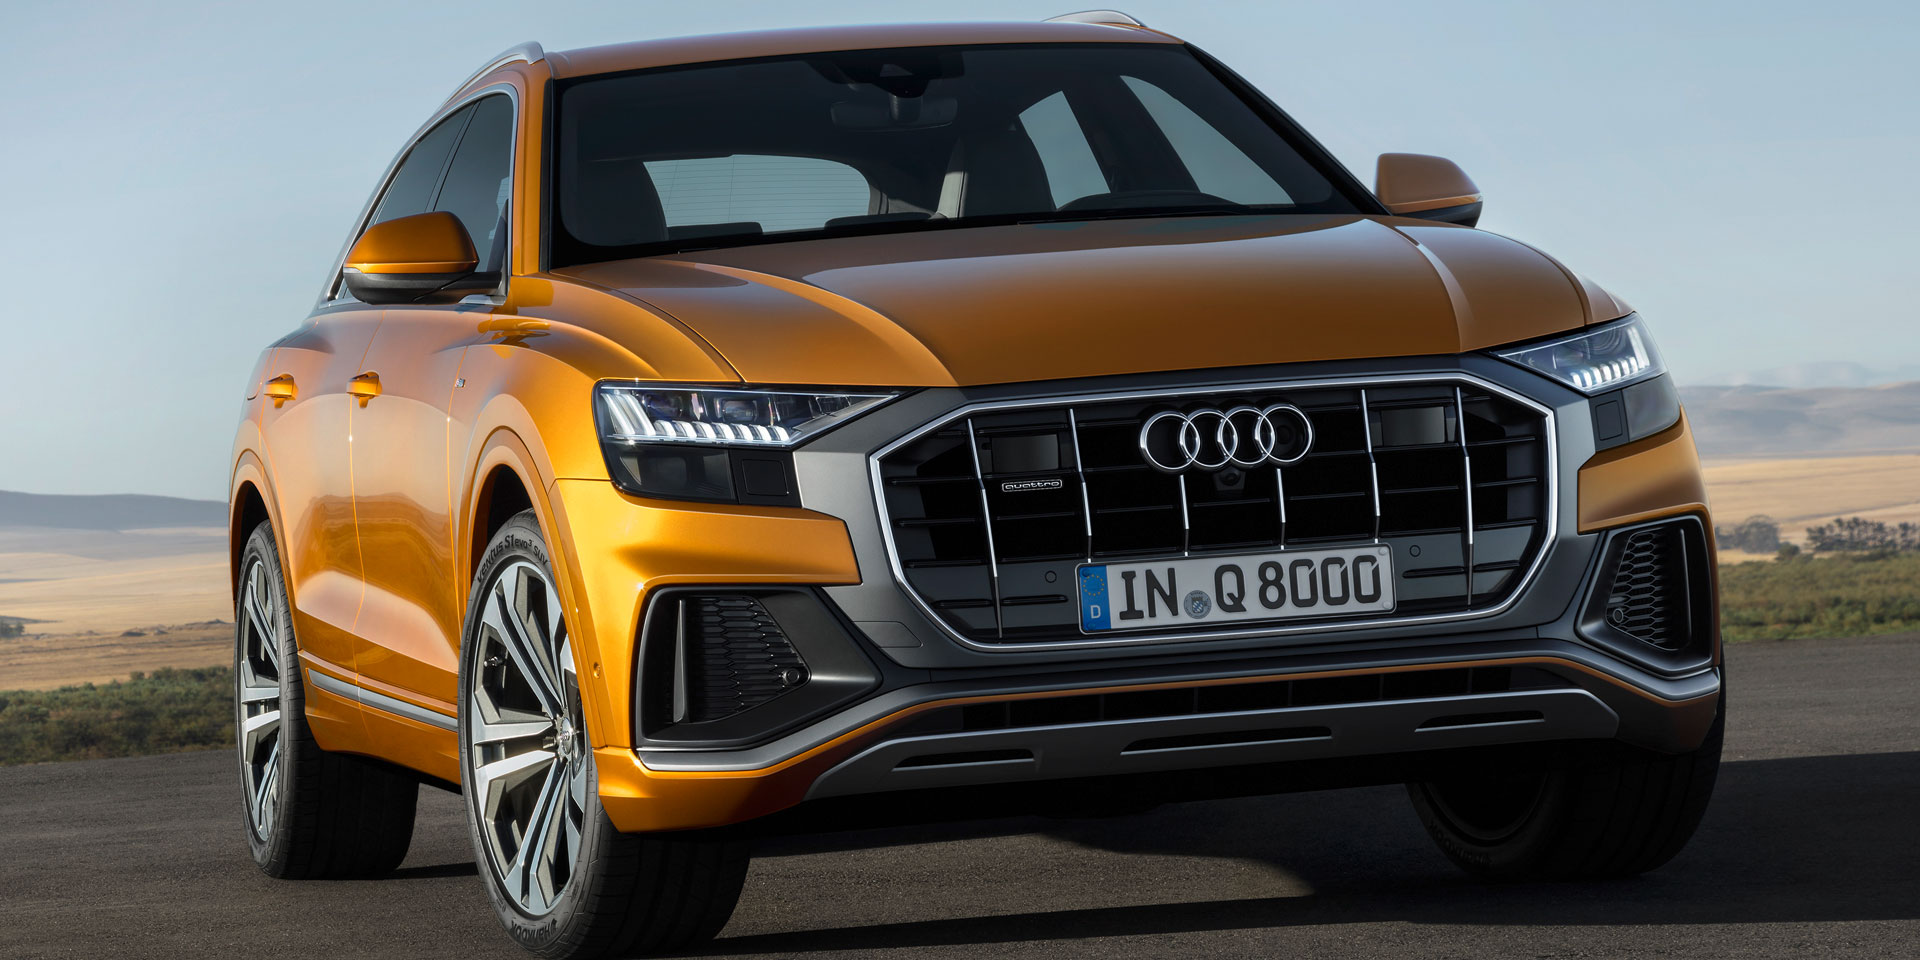 2019 Audi Q8 Vehicles On Display Chicago Auto Show